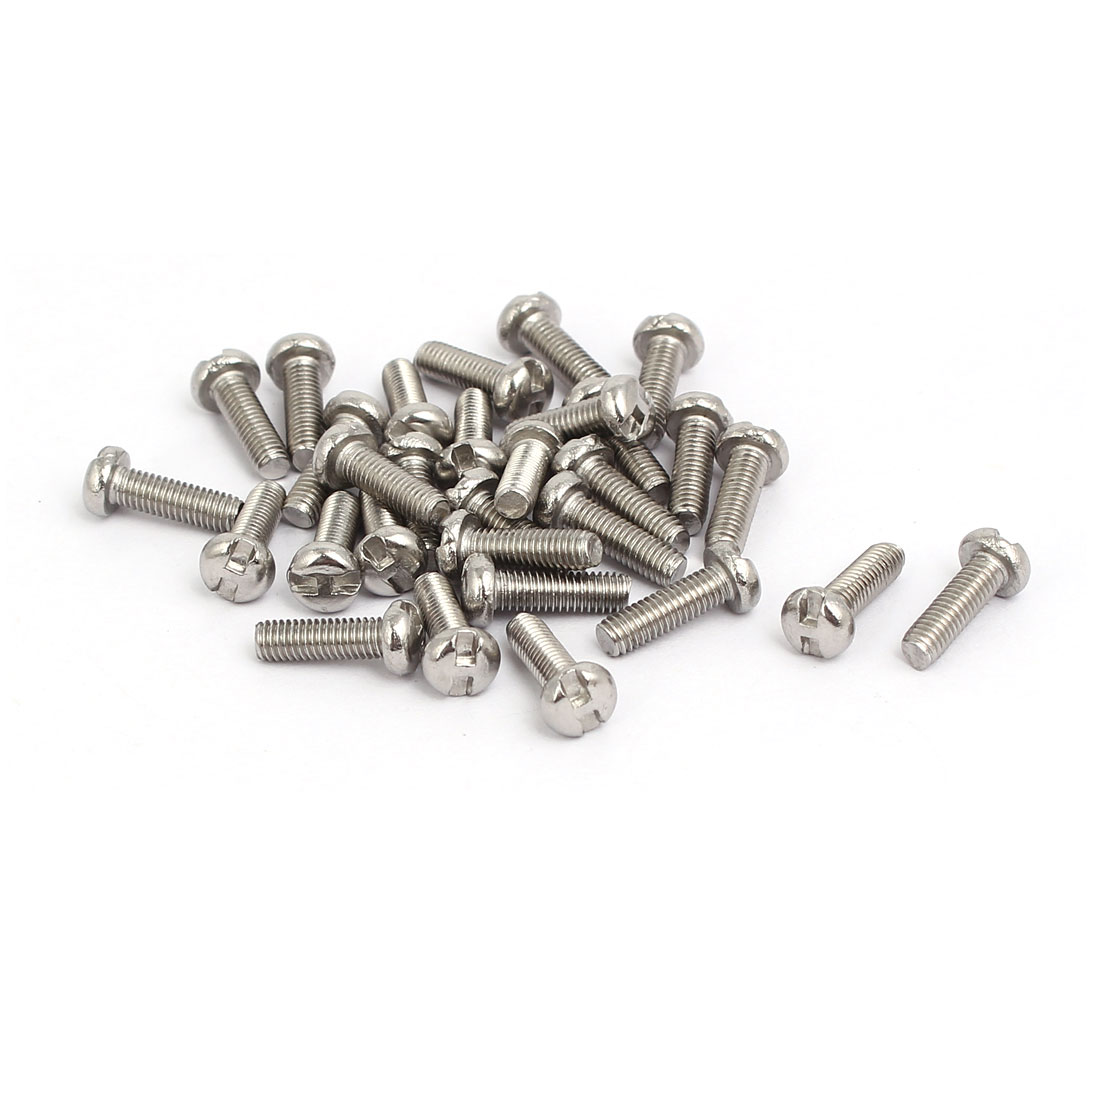 M3x10mm 304 Stainless Steel H-Type Drive Pan Head Tamper Proof Screws 30pcs